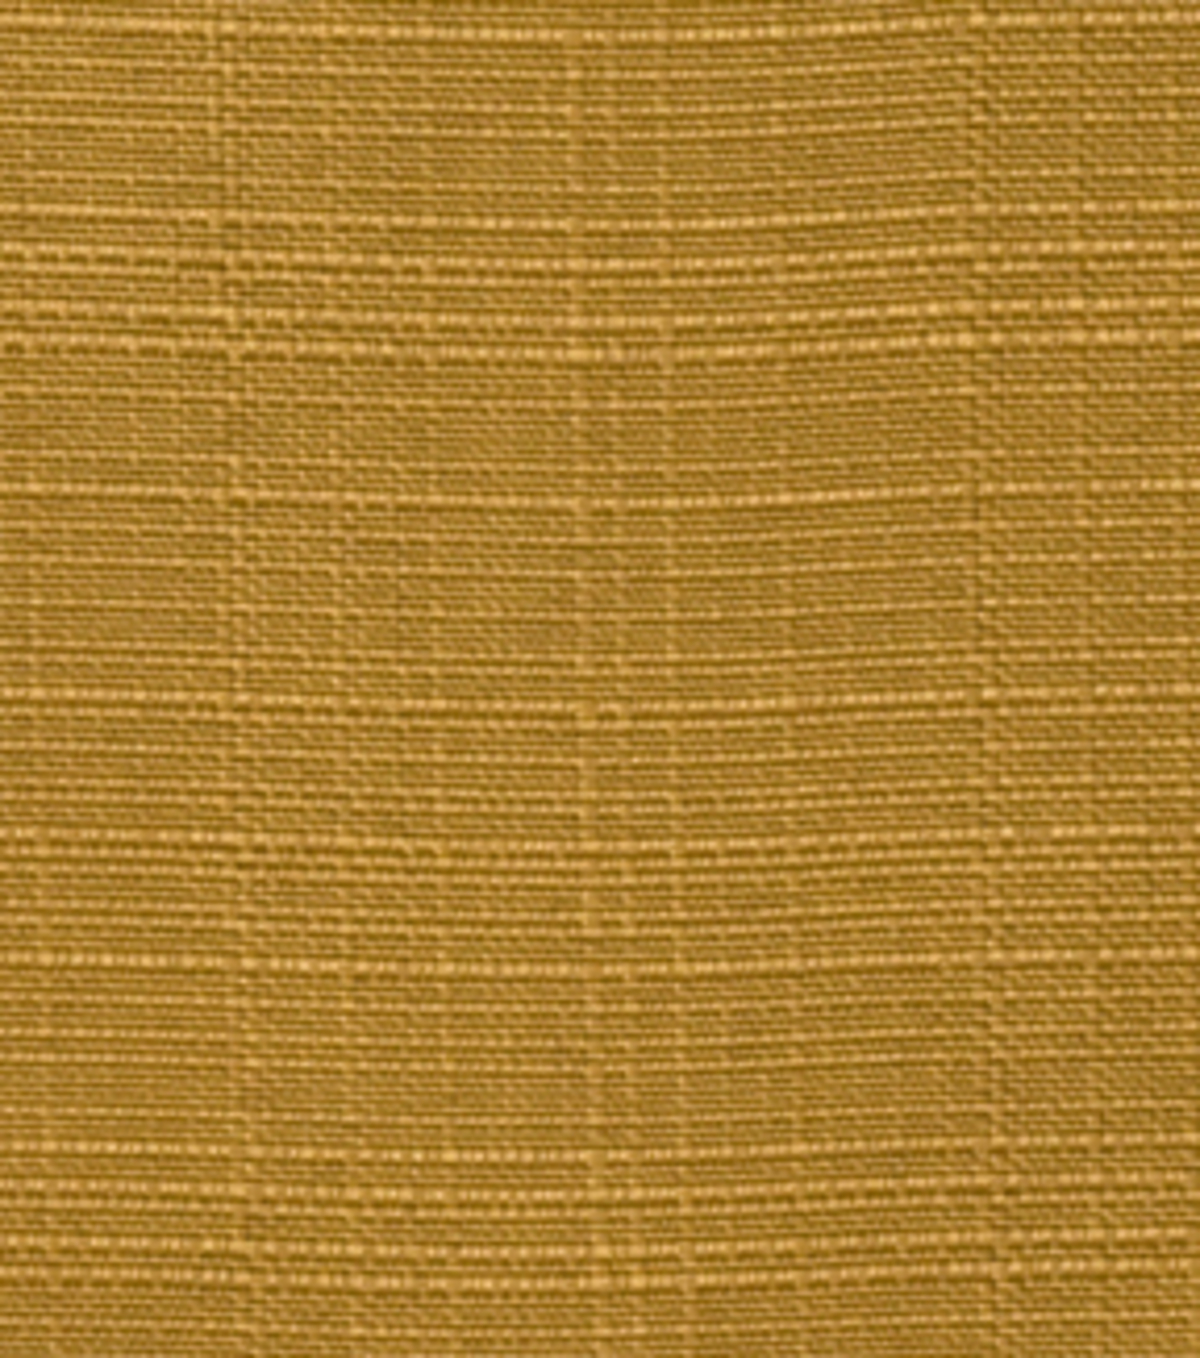 8''x8'' Home Decor Fabric Swatch-Solid Fabric Eaton Square Kung Copper